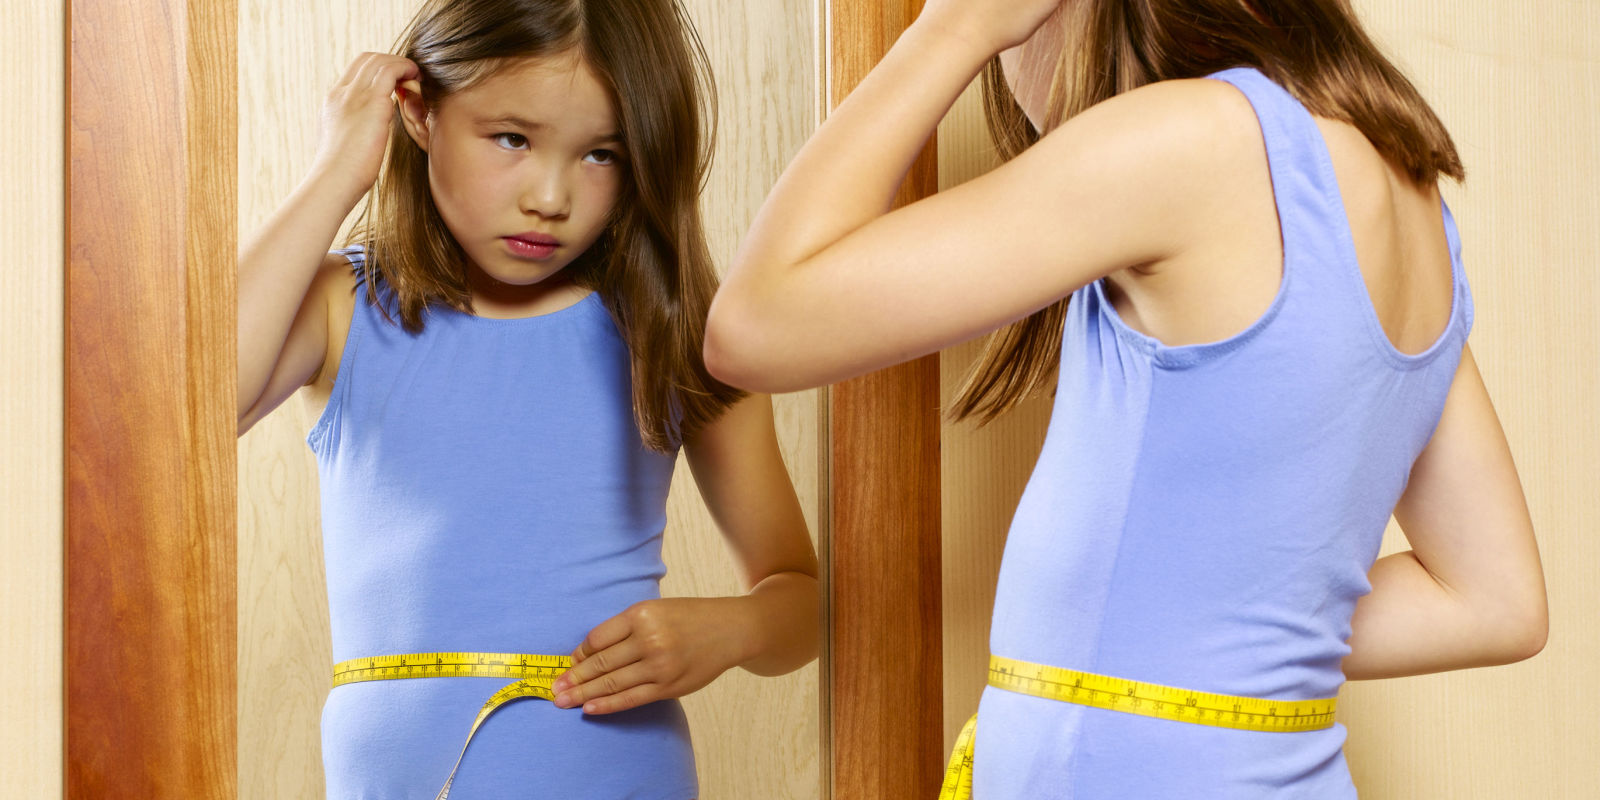 Being too skinny more depressing for teen boys than being overweight.